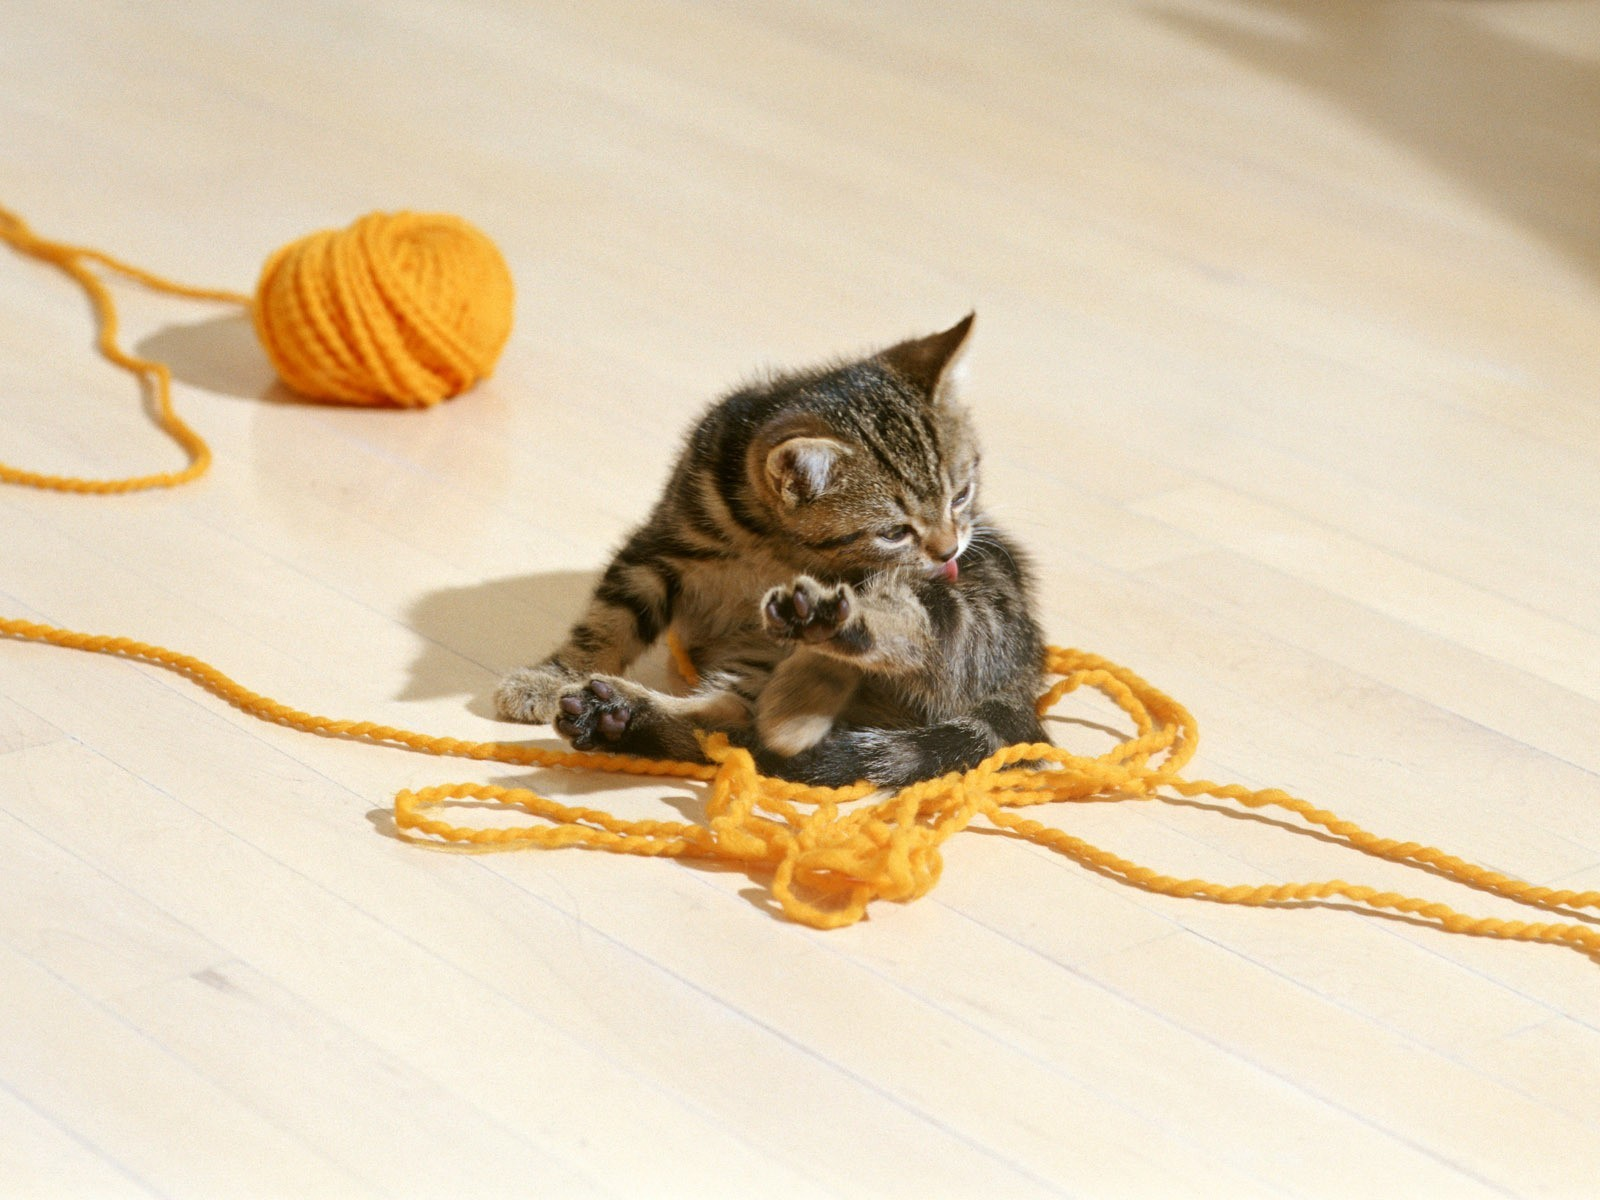 cats Kittens yarn HD Wallpaper